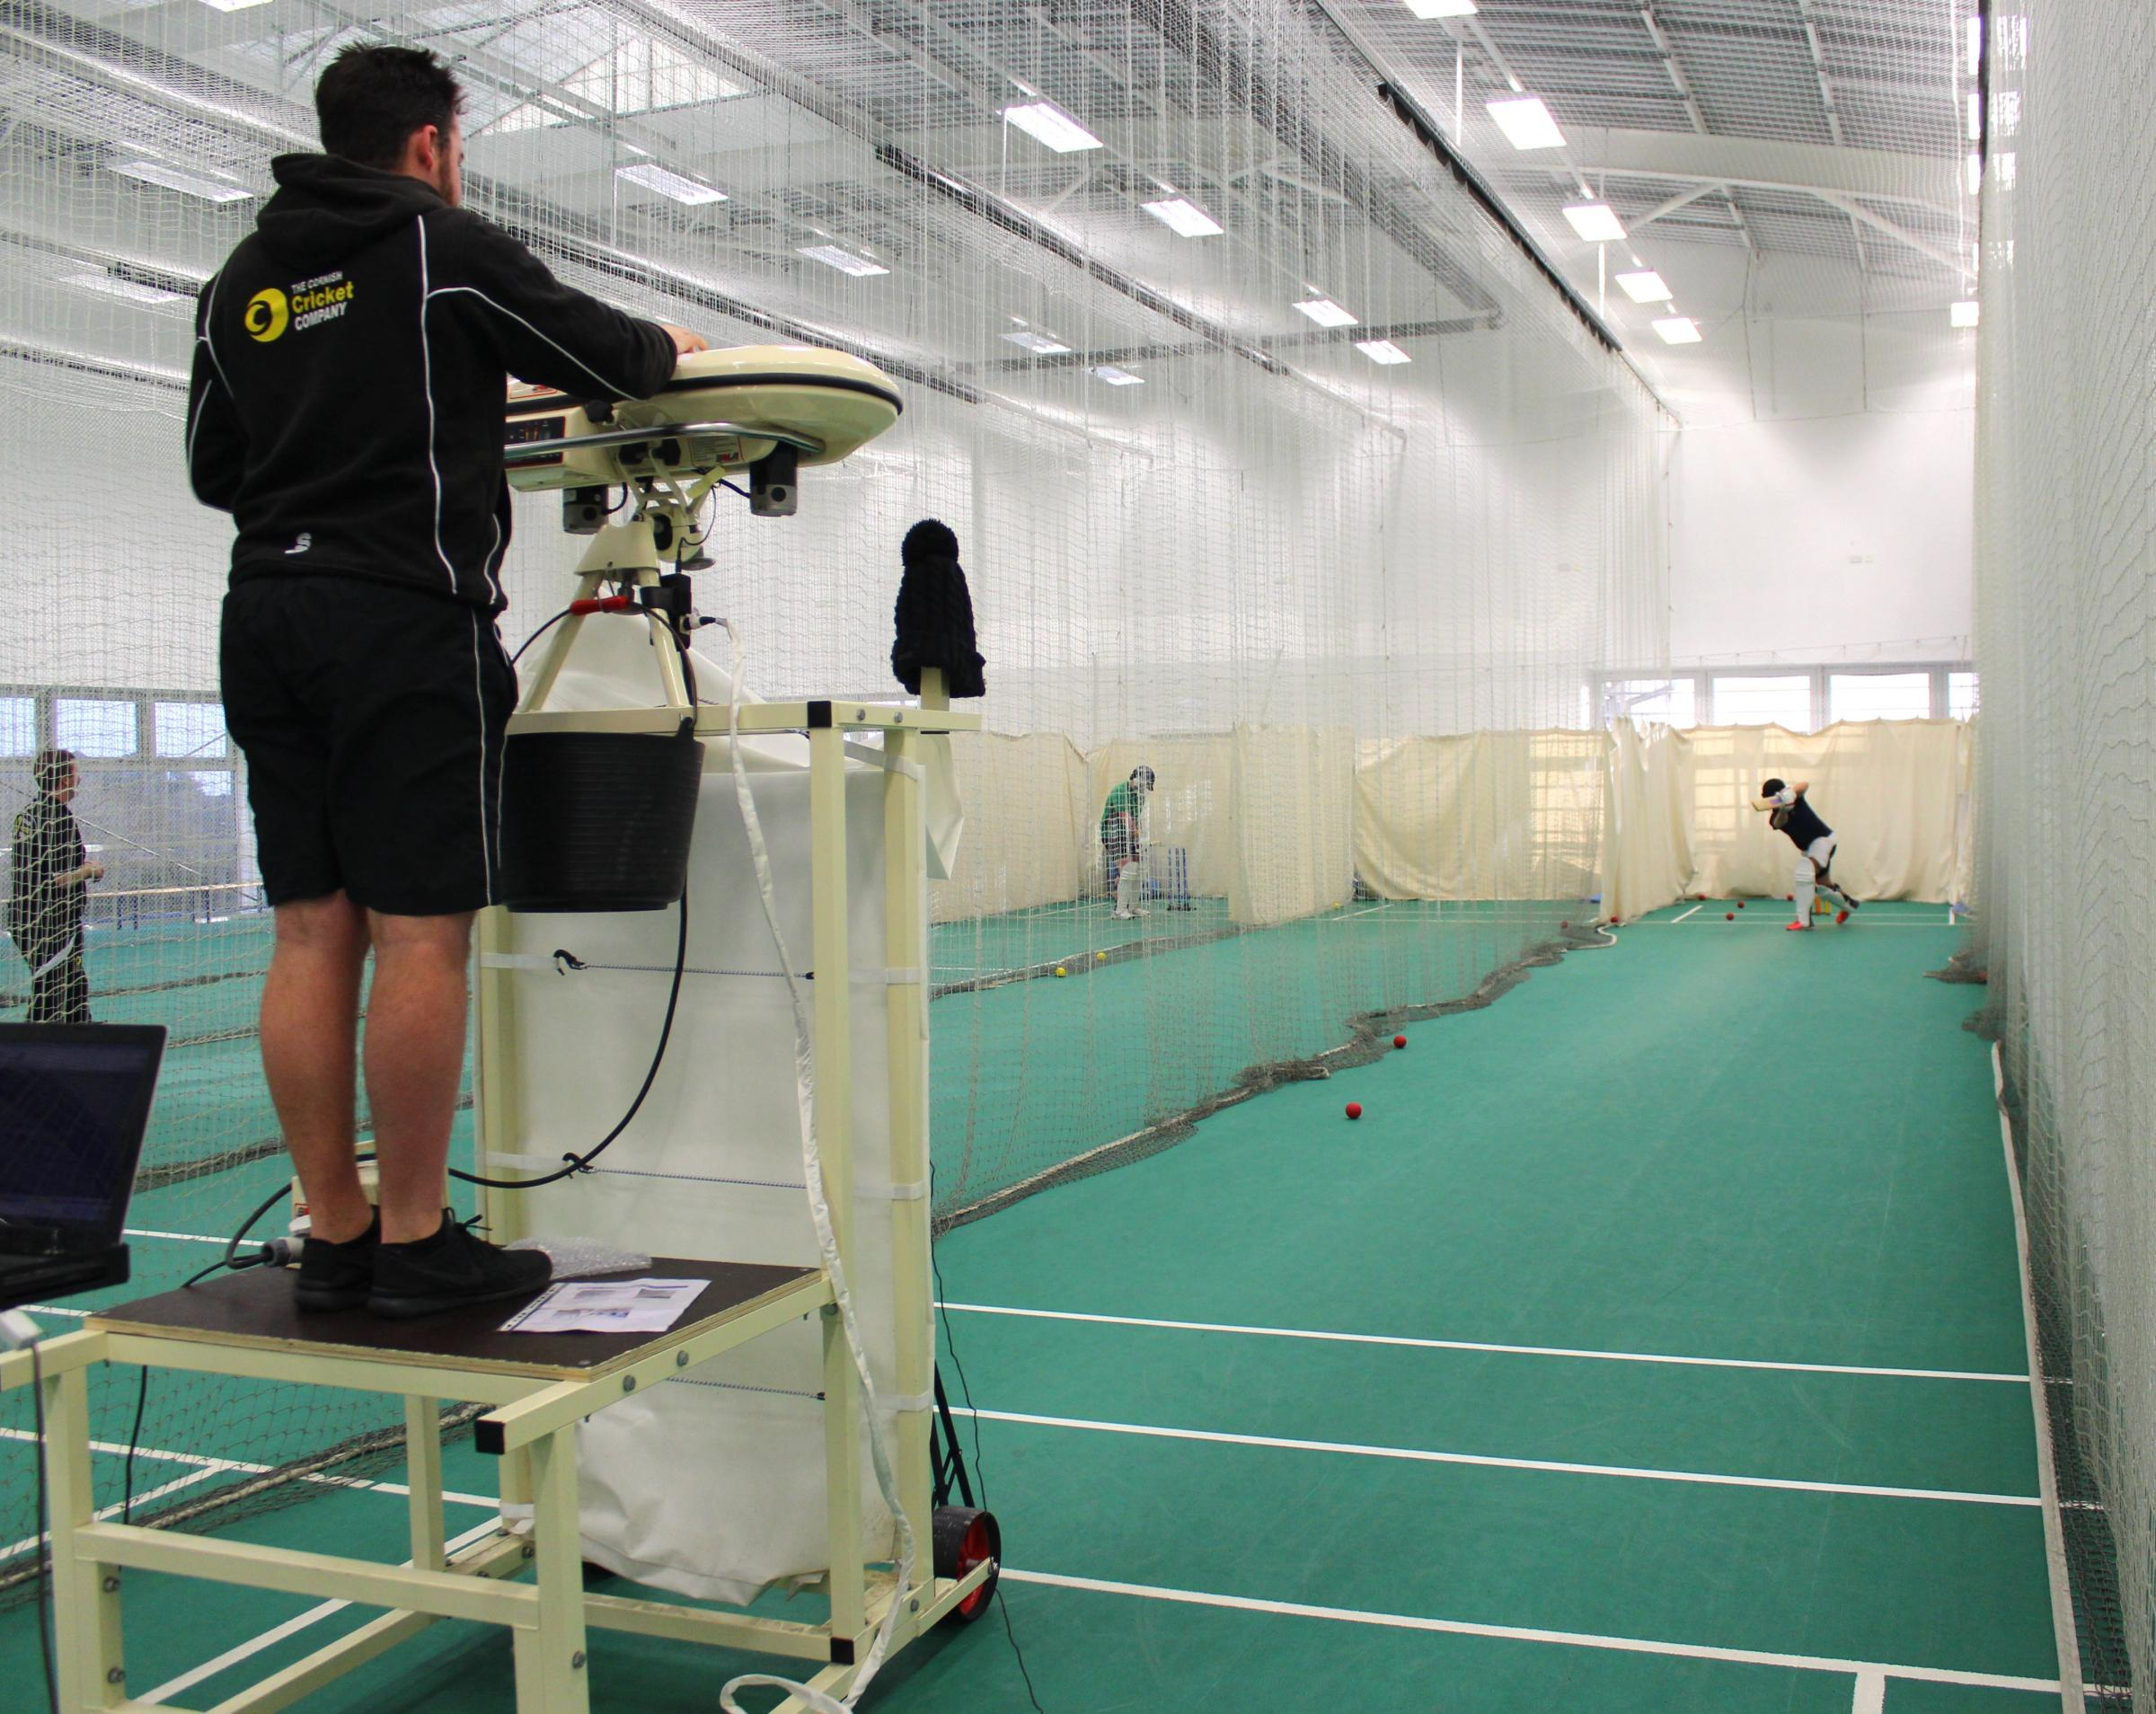 : A Cricket Academy student testing out the new cricket analysis equipment at Truro College. (53390775)